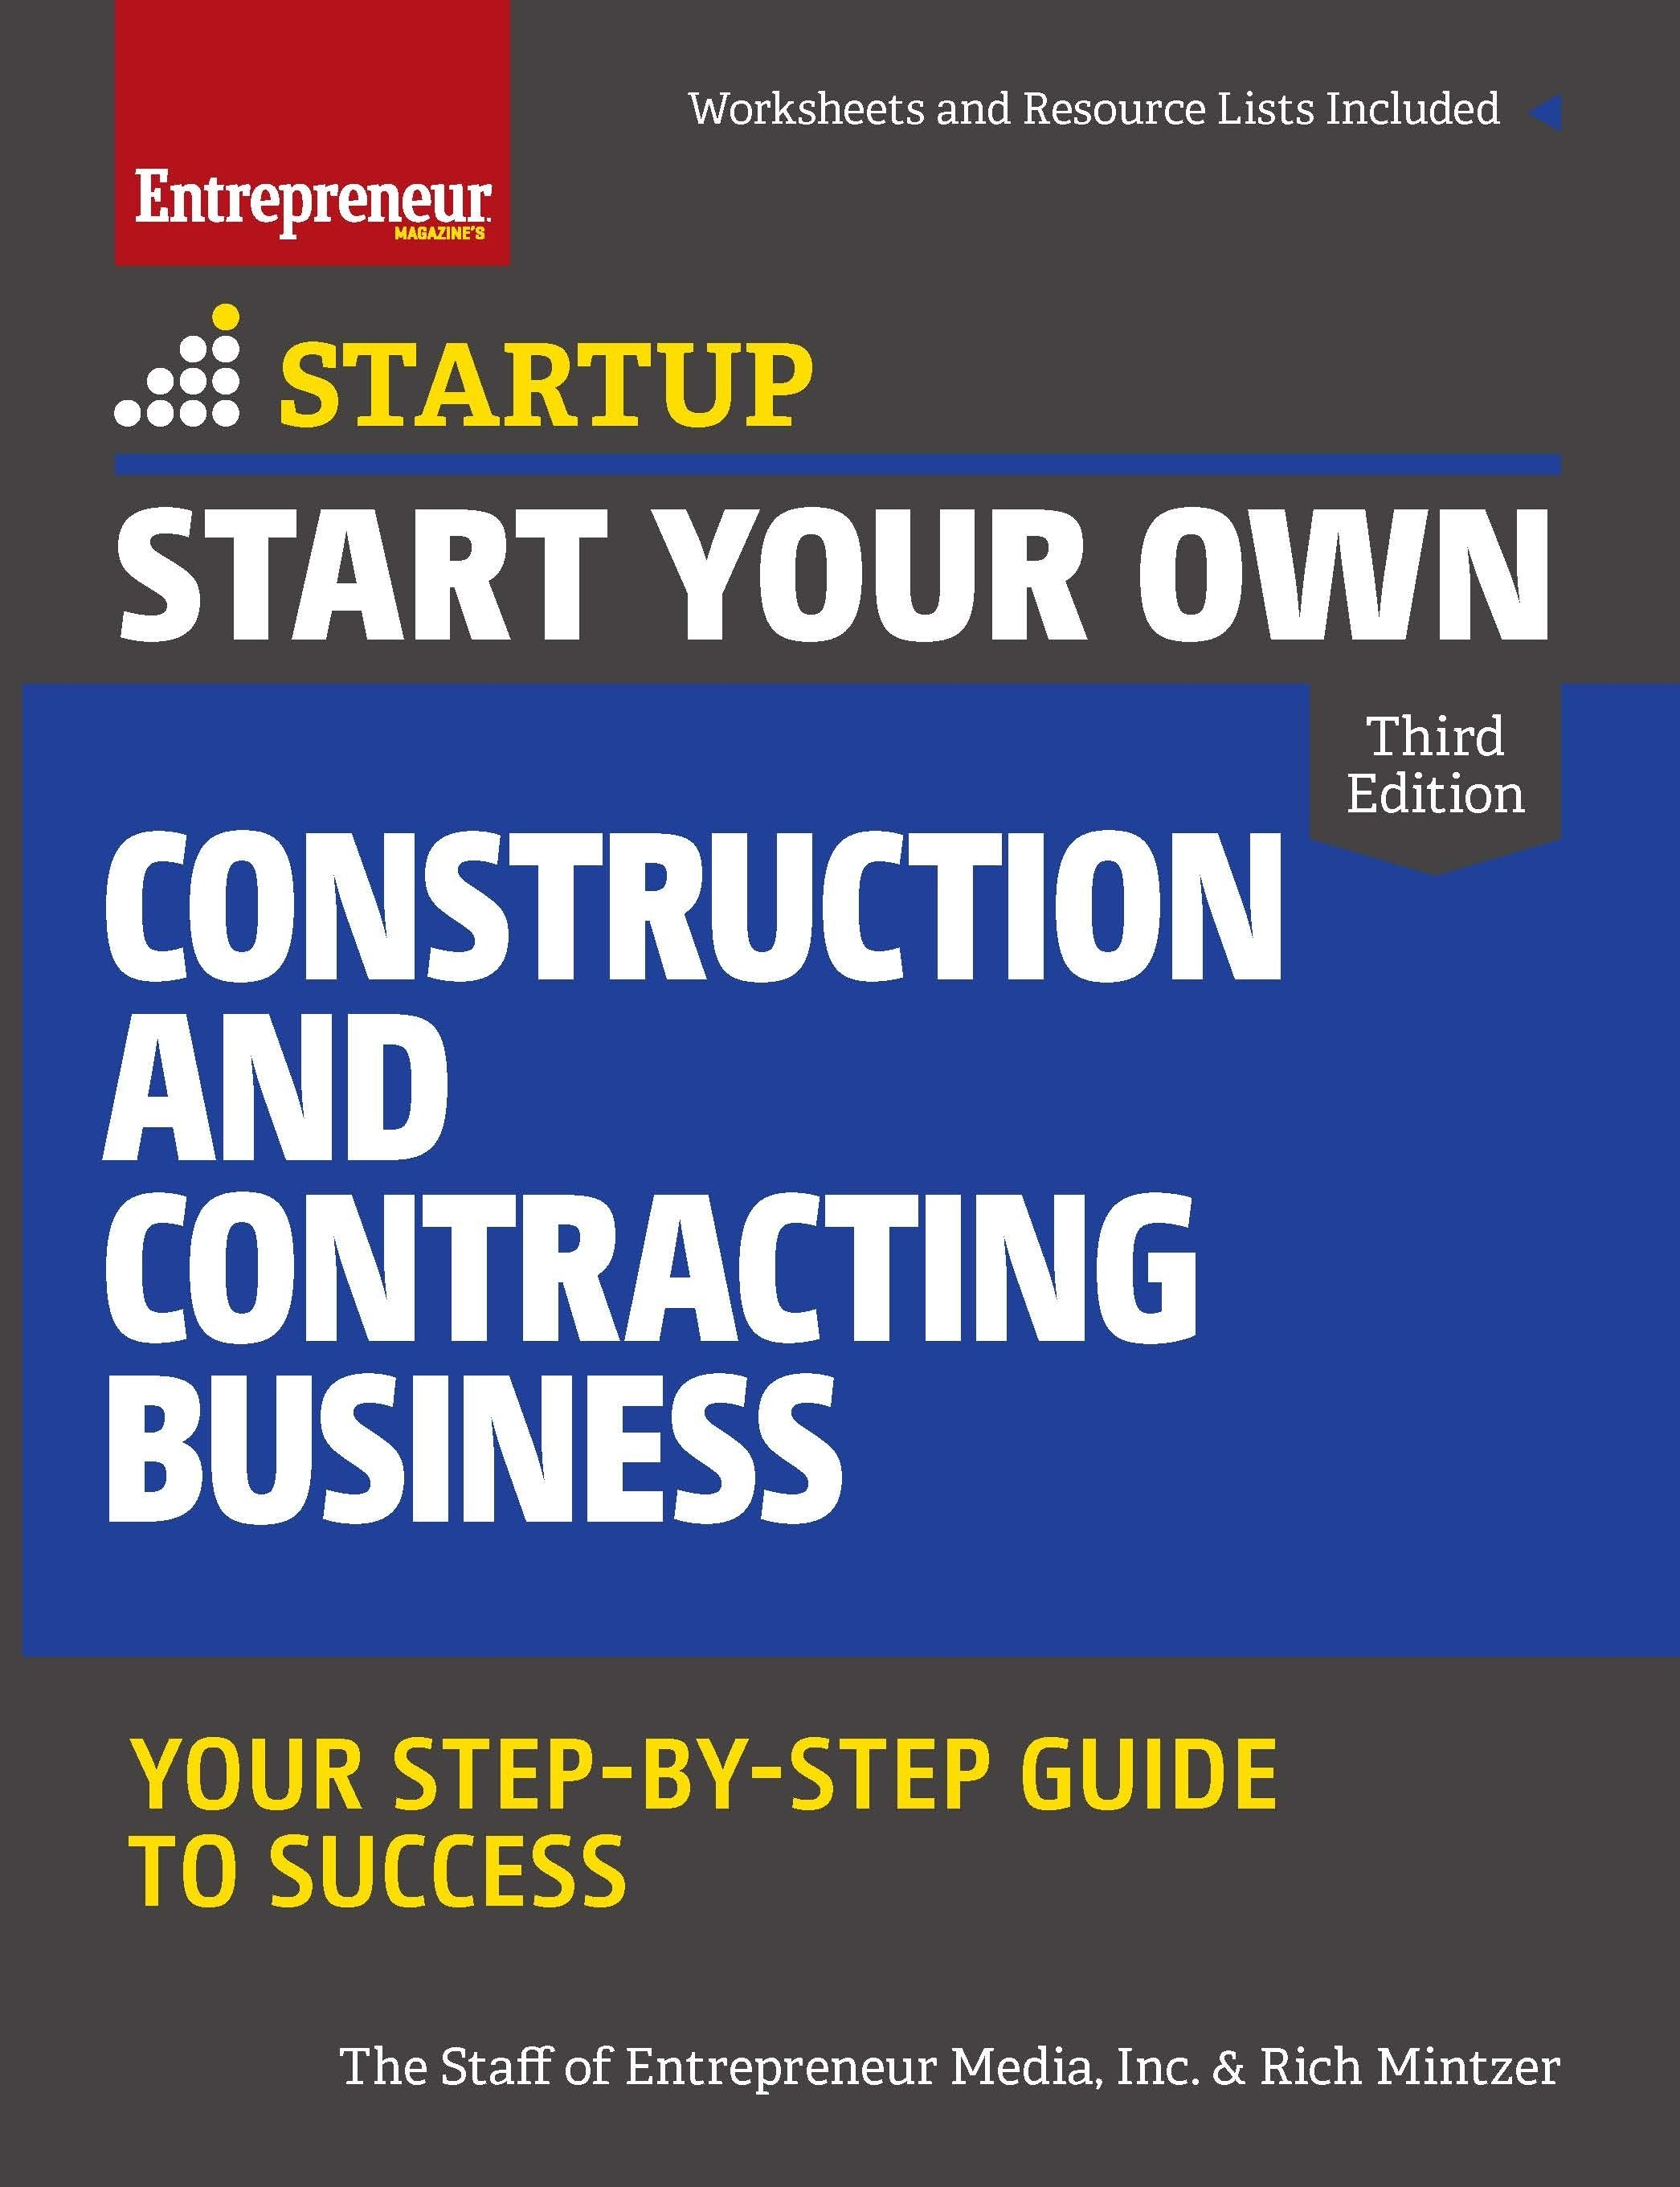 10 Lovable Ideas To Start Your Own Business start your own construction and contracting business 2020